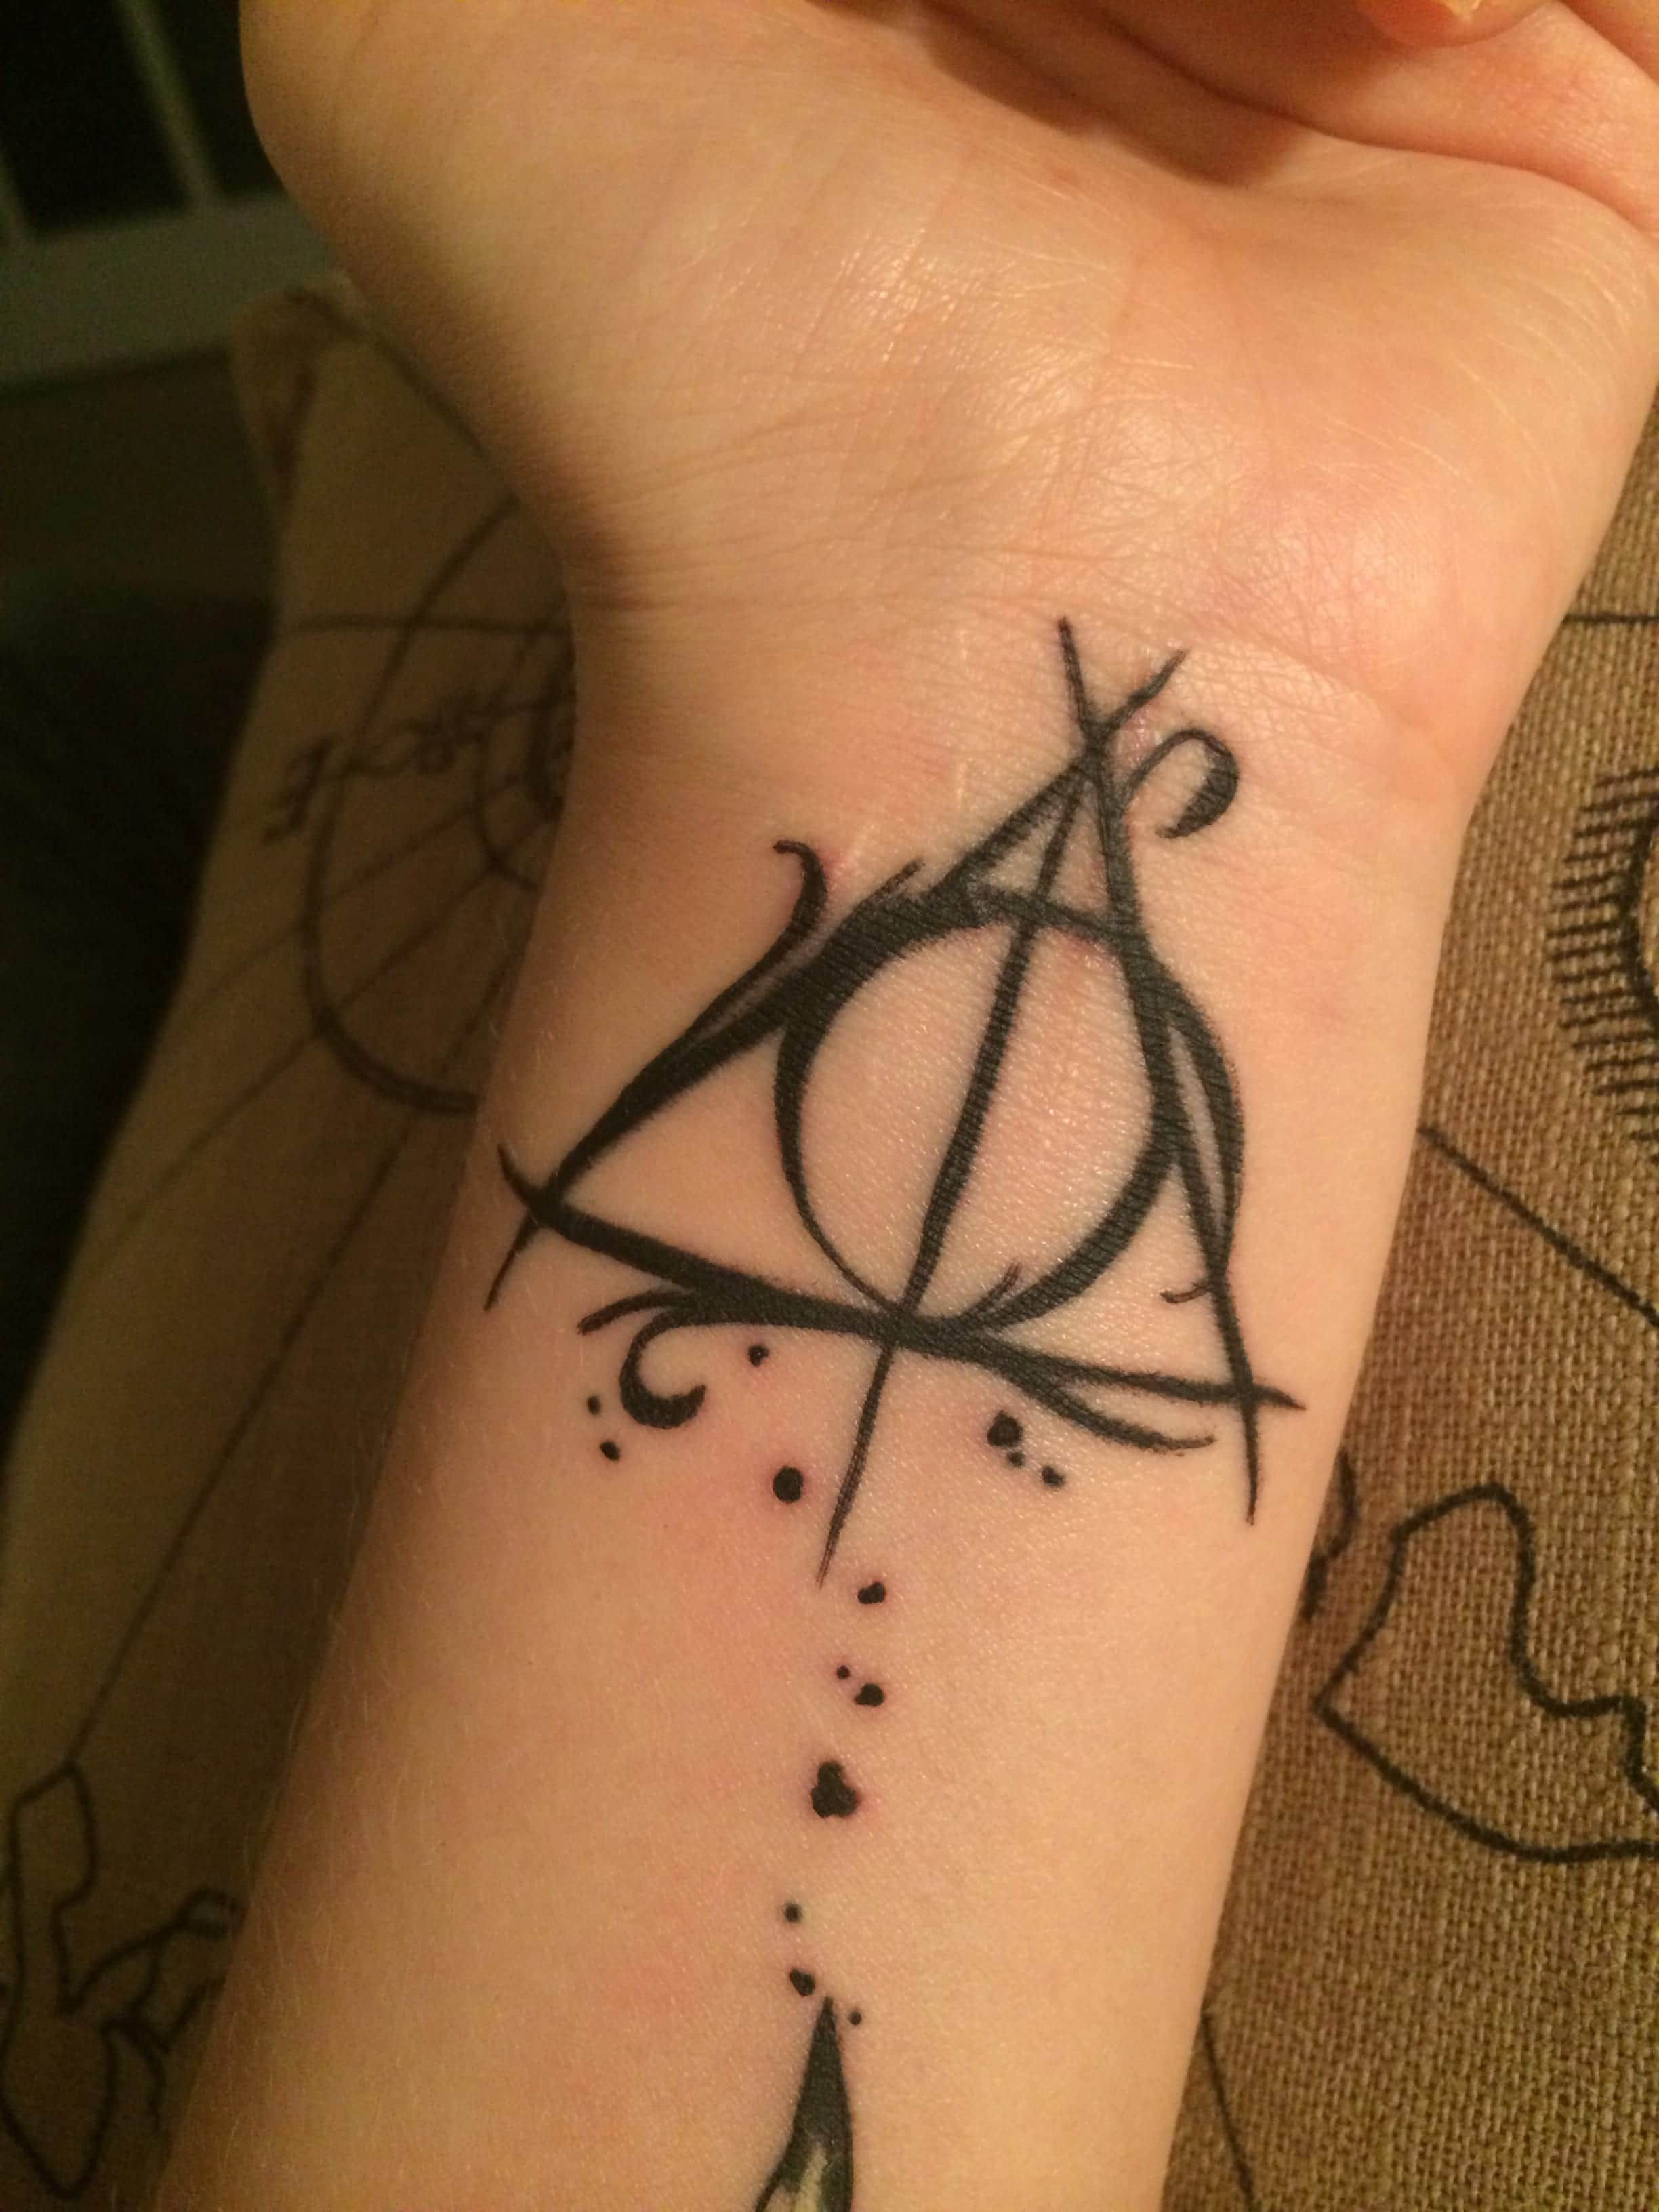 134 Astounding Deathly Hallows Tattoo Designs Harry Potter Tattoos Deathly Hallows Tattoo Tattoos